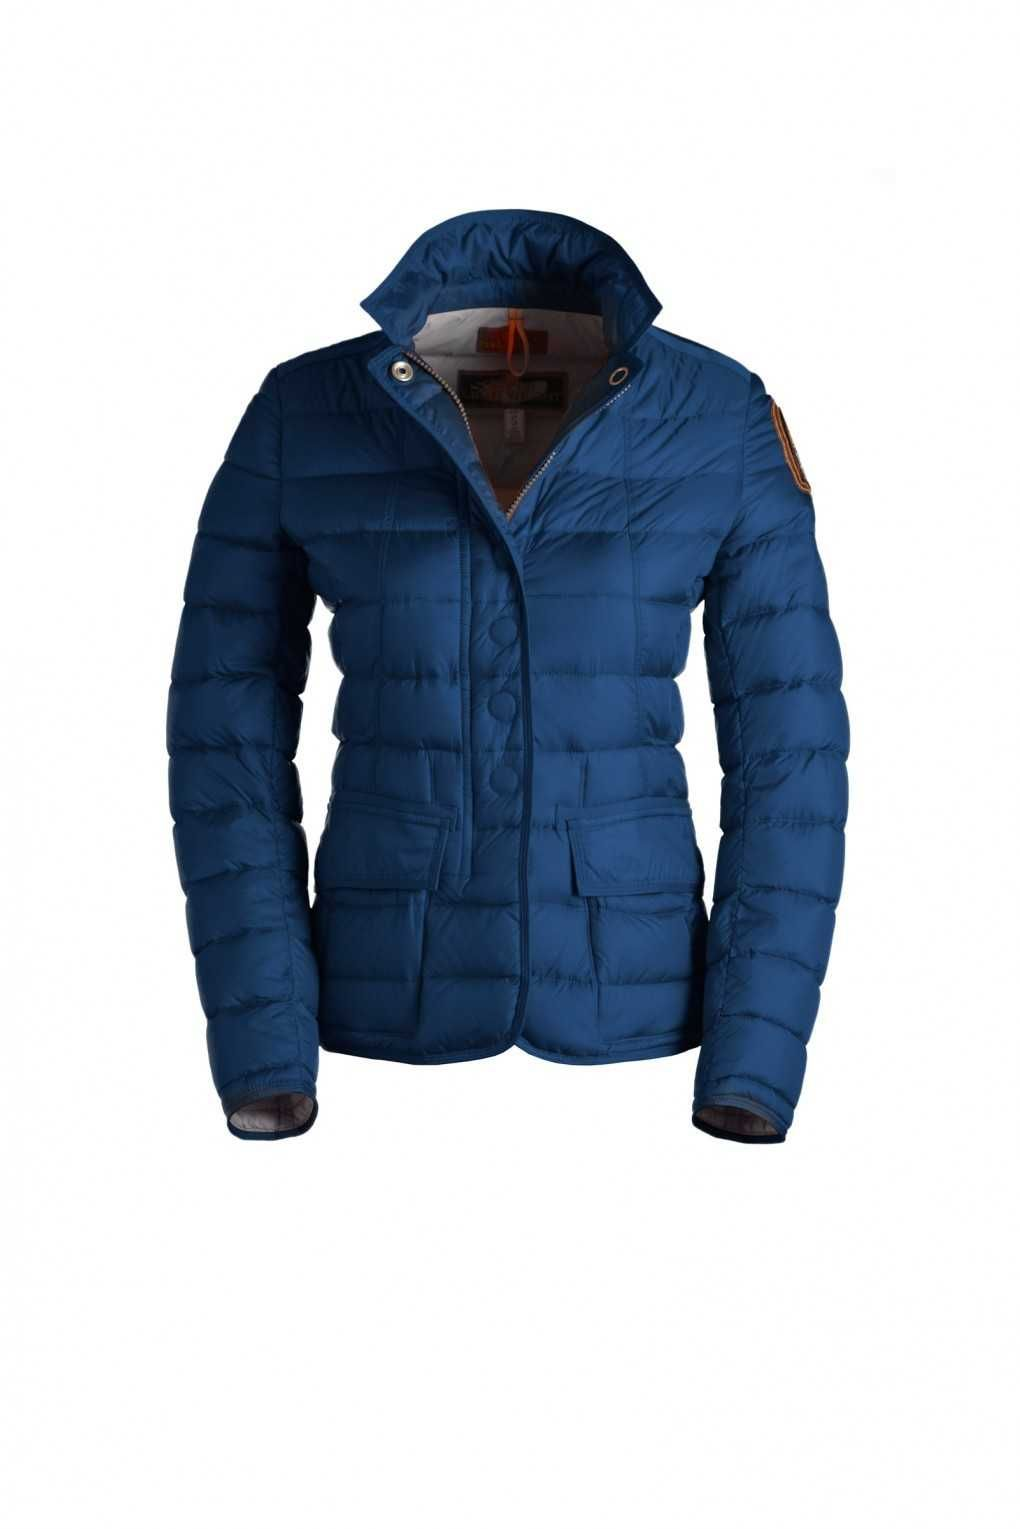 Parajumpers Jacket Review - Shop Discount Parajumpers Women Winter, Parajumpers Jackets Usa And Parajumpers Online